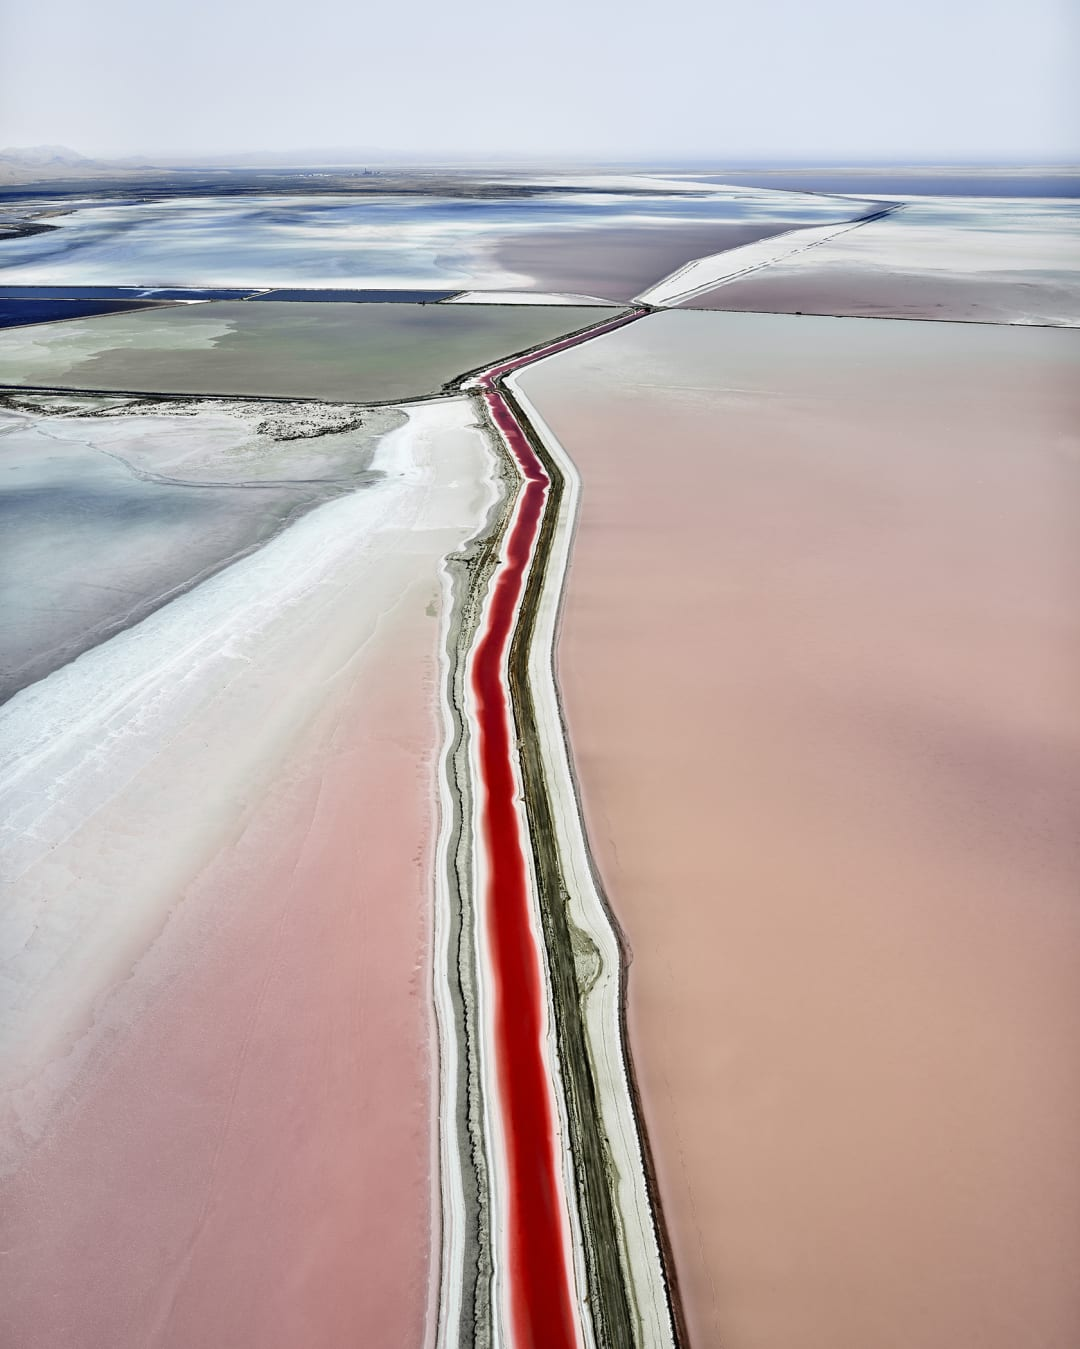 'Parralex, Great Salt Lake, UT, 2017' - David Burdeny